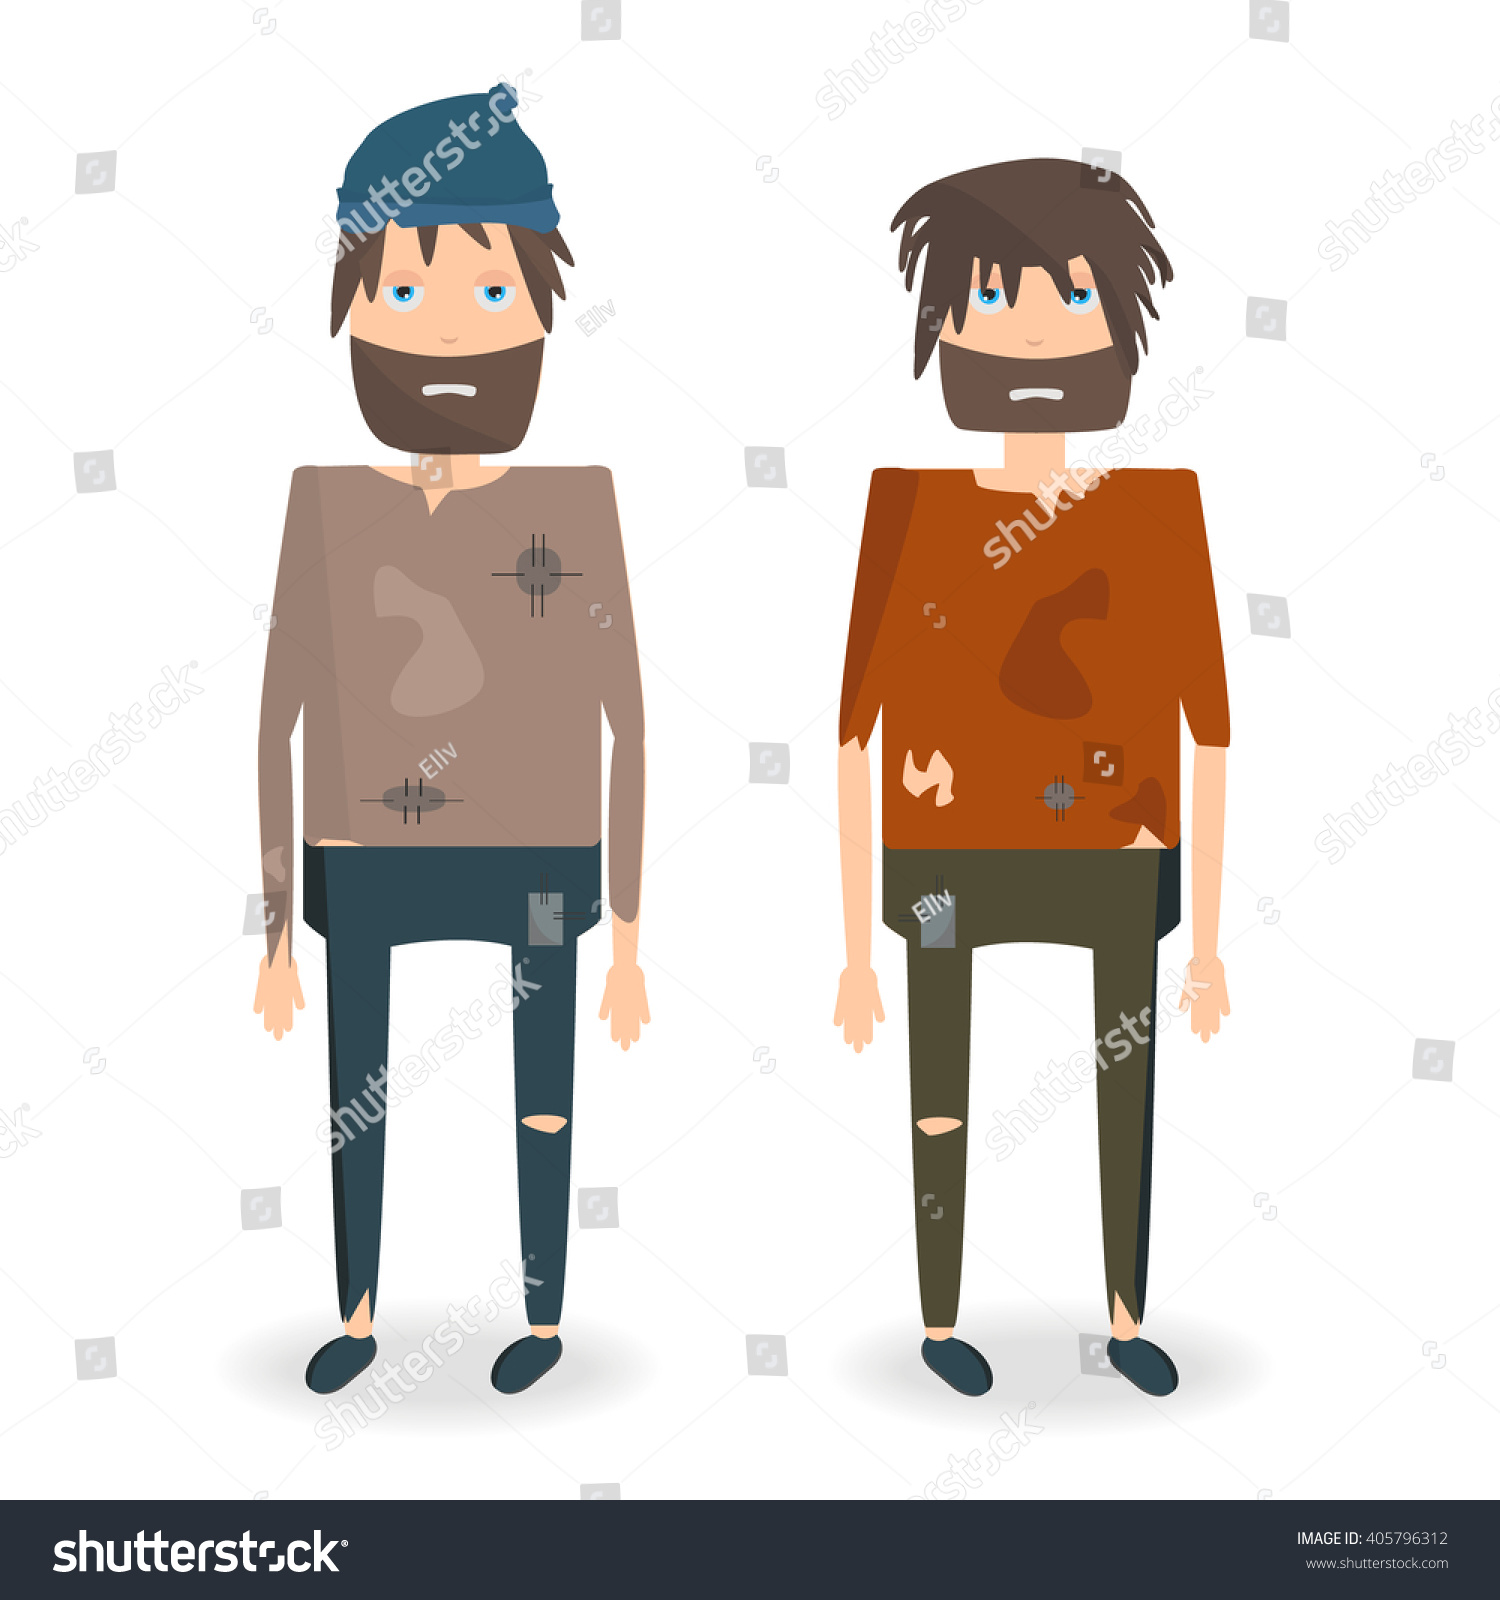 Cartoon Characters Clothes : Vector illustration two homeless people rags stock